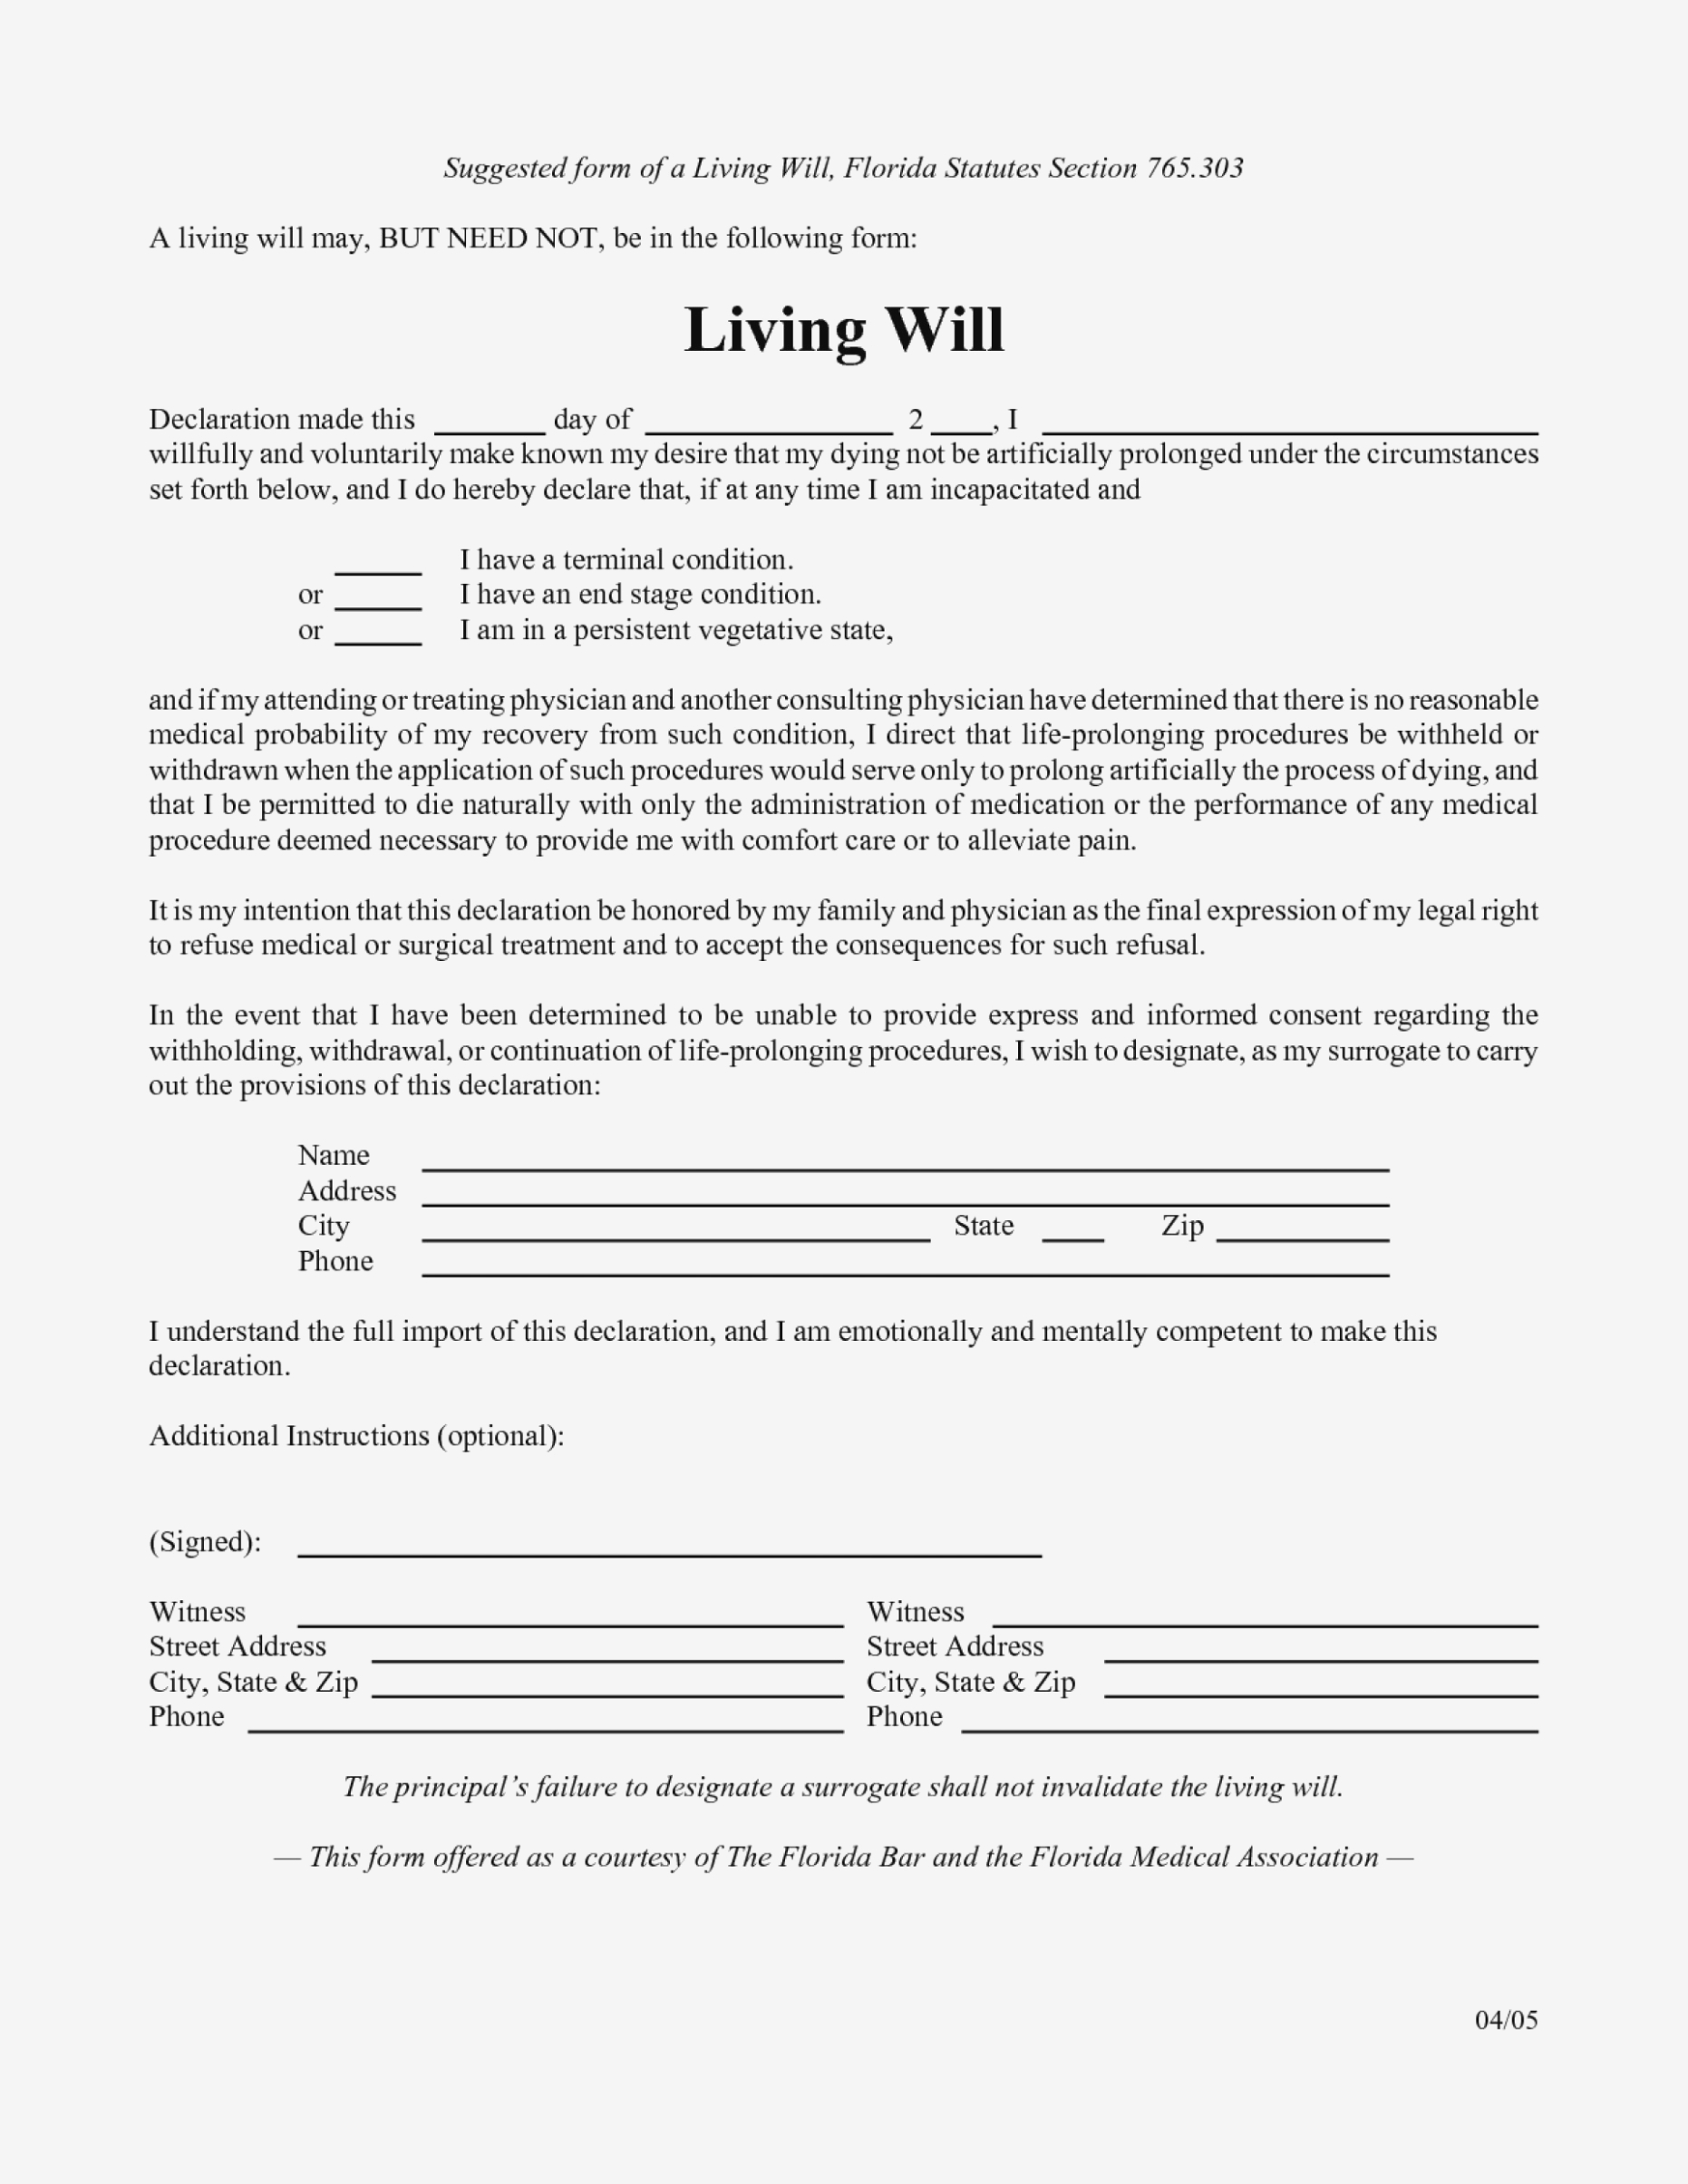 Free Printable Living Will Forms Florida 11 To Print Form .. – Form - Living Will Forms Free Printable